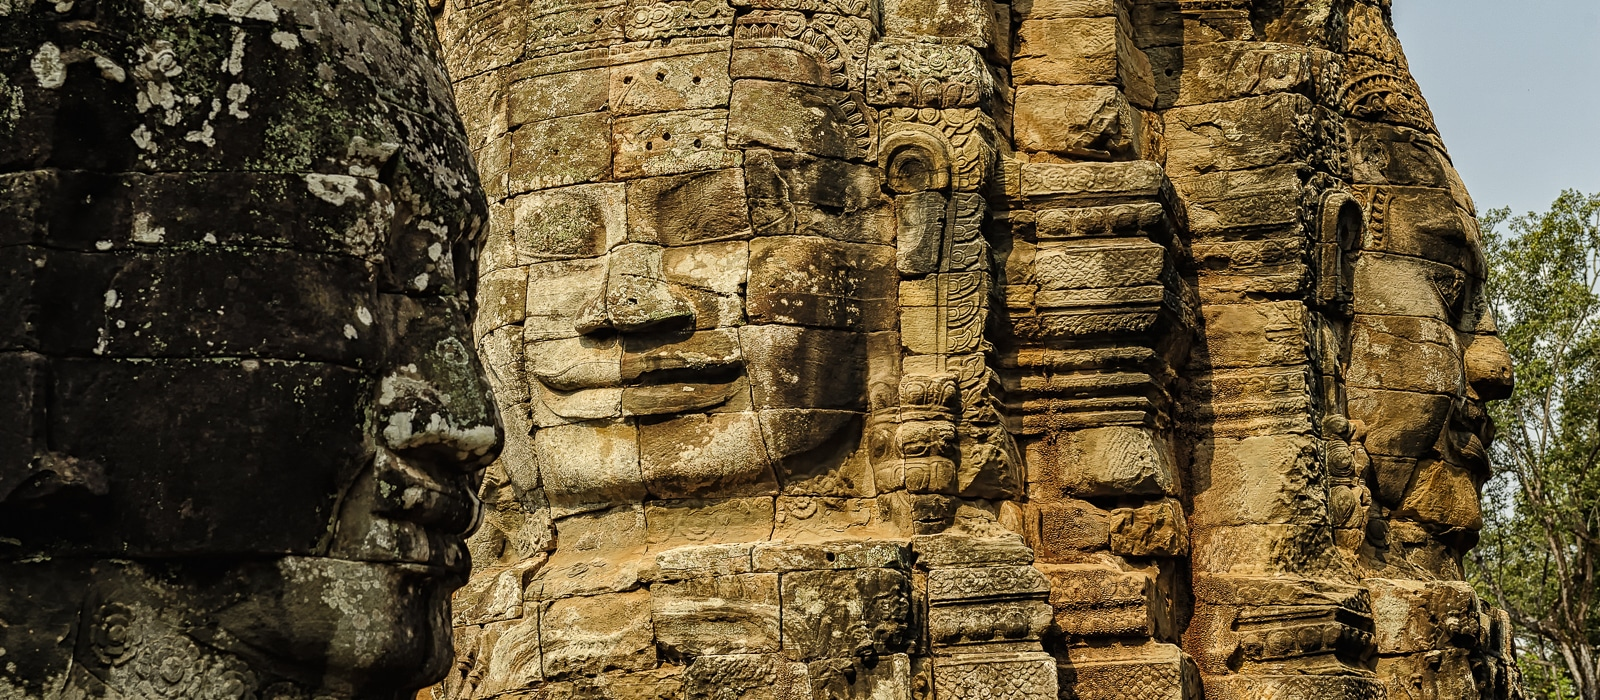 img-diapo-entete - Cambodge-1600x700-10.jpg